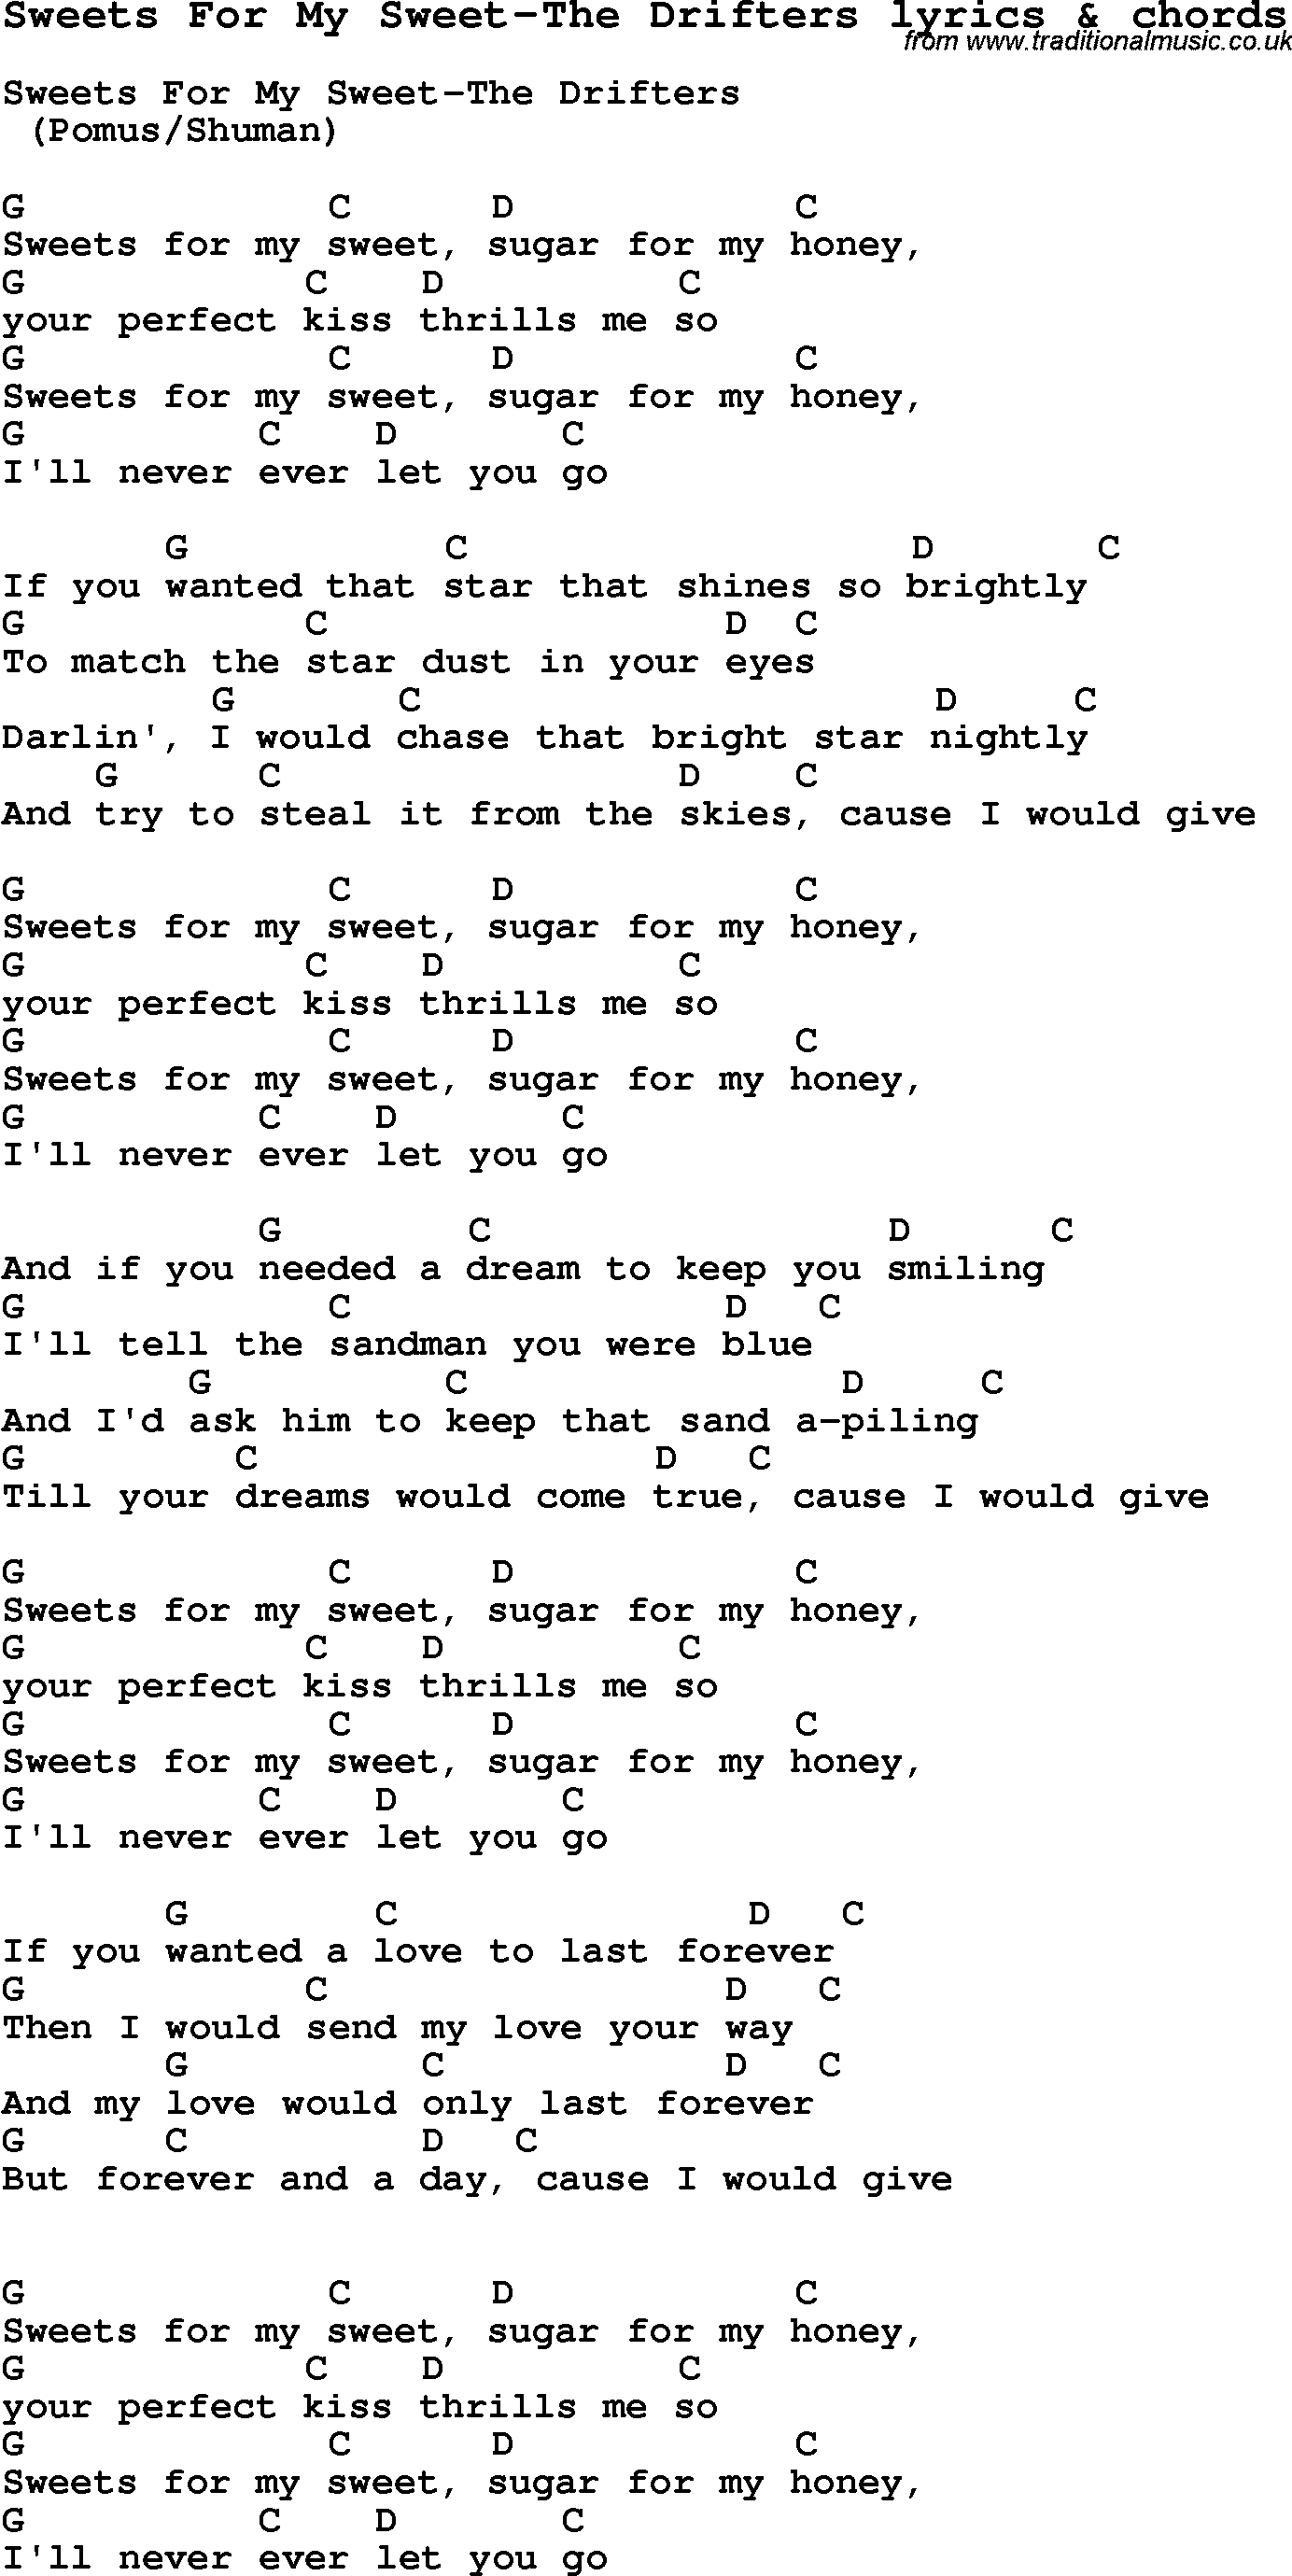 Love Song Lyrics forSweets For My Sweet The Drifters with chords.